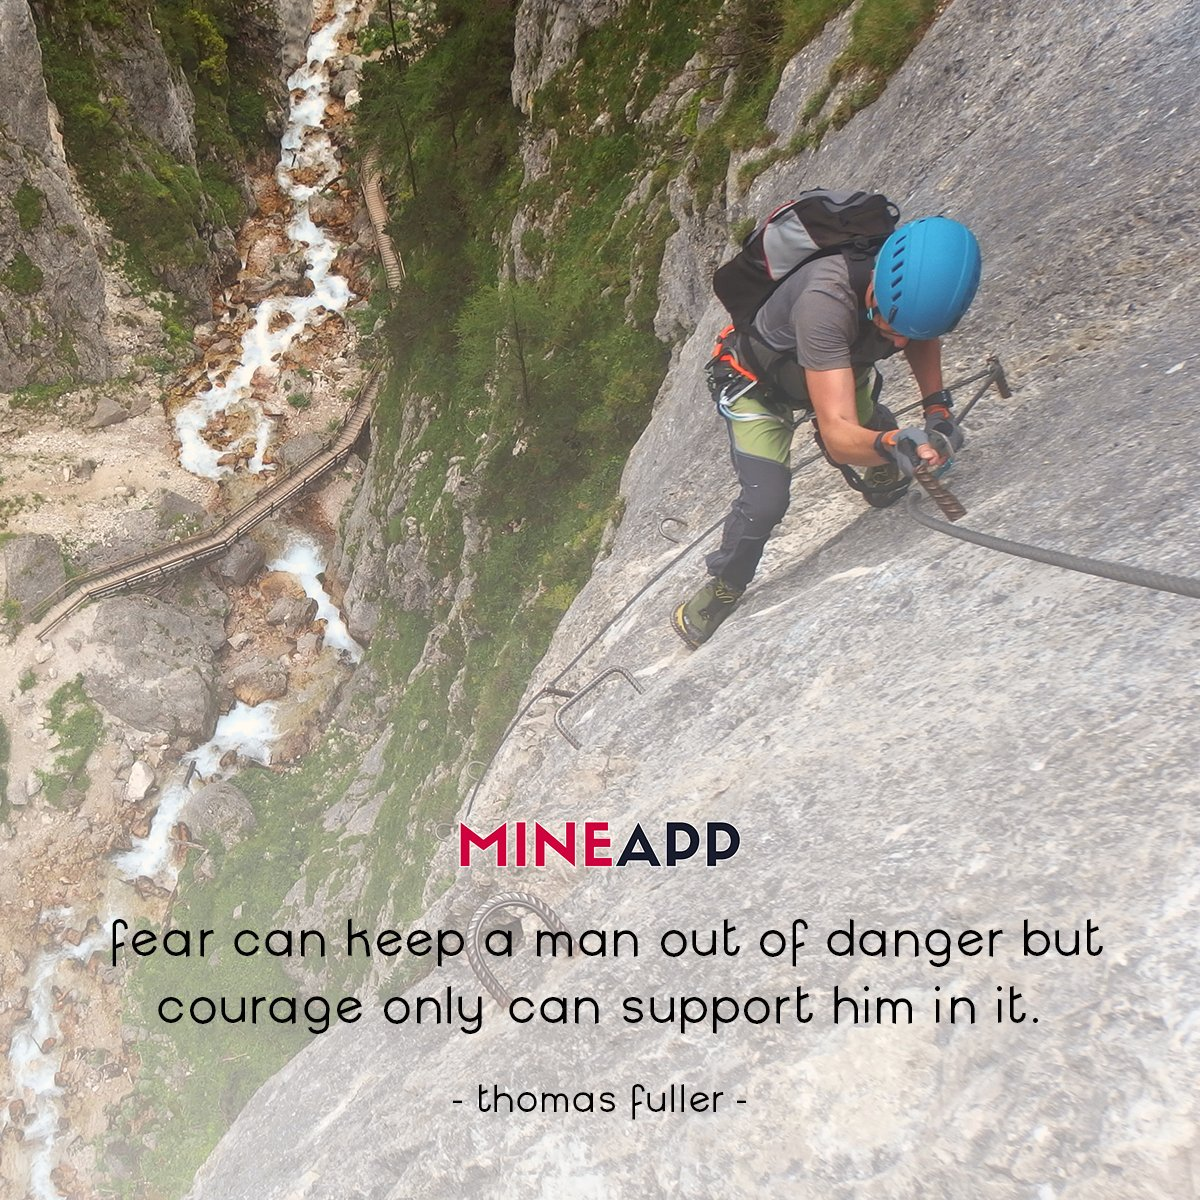 #mineapp  #WednesdayMotivation  #WednesdayThoughts  #motivational   #fear  #danger  #courage  #support  #app  #mobile  #mobileapp  #android  #androidapp  #social  #socialapp  #india